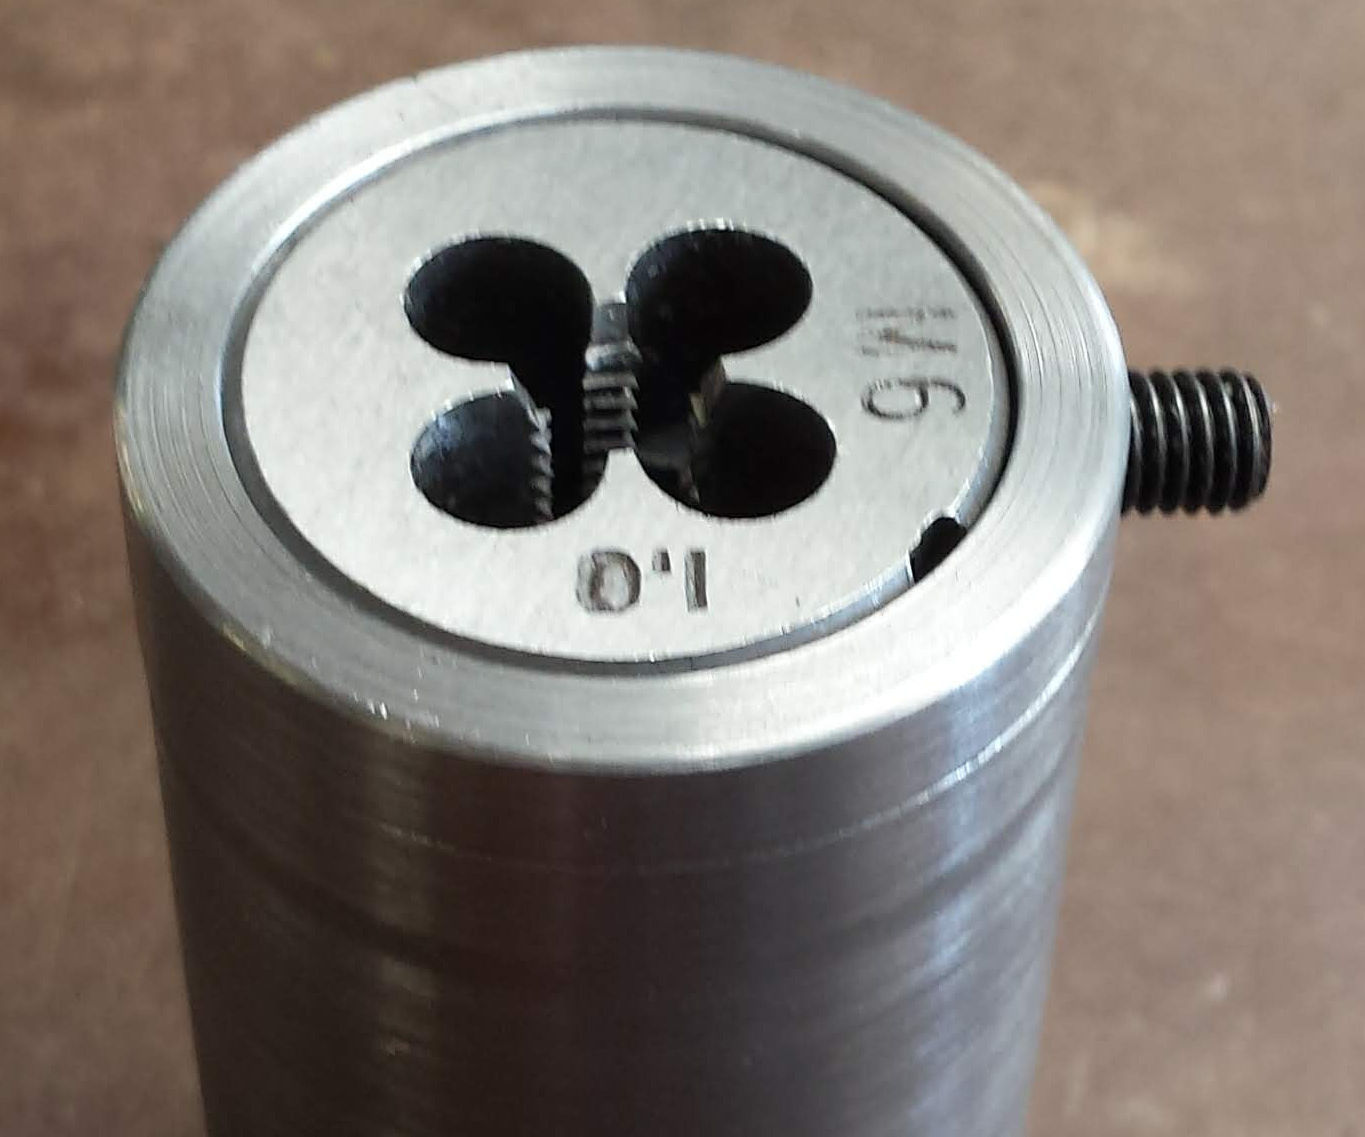 Cheap and Easy to Make Die Holder for the Mini Lathe